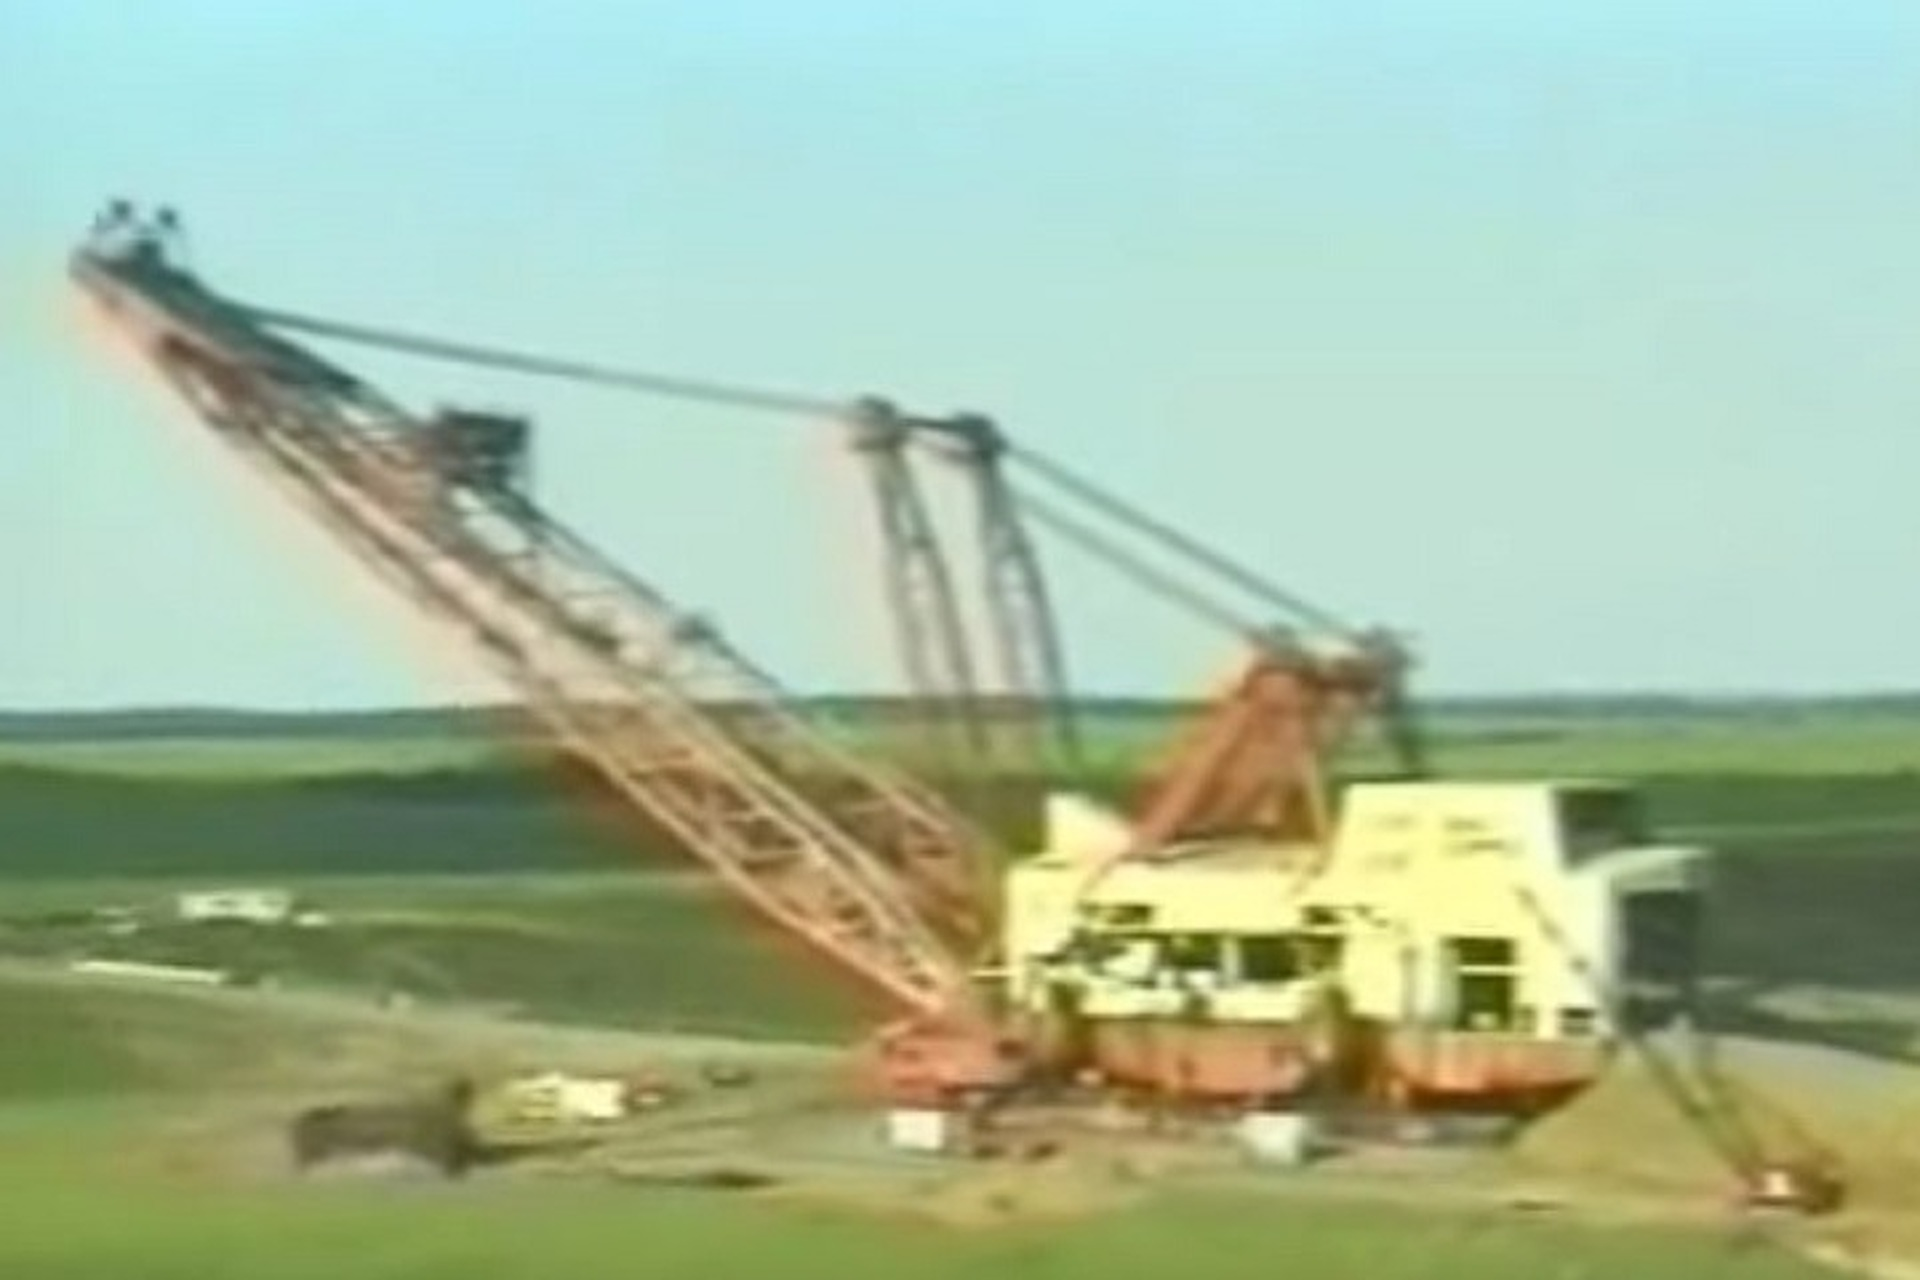 Watch the Demolition of the World's Largest Earth Mover